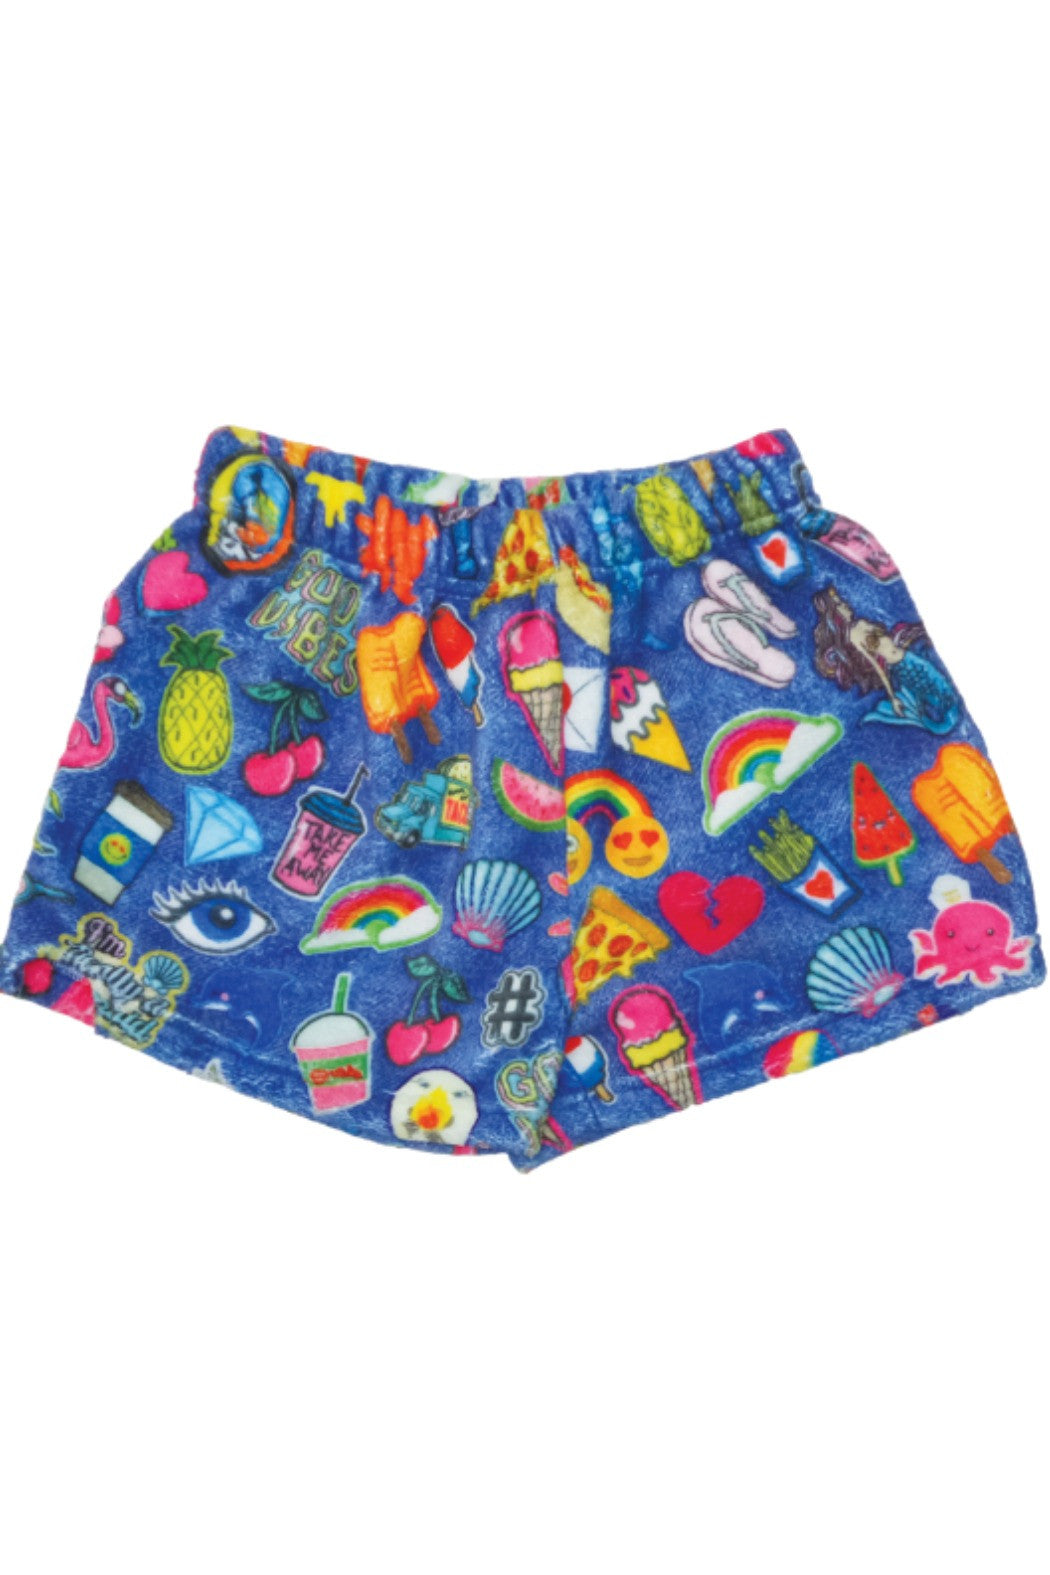 Patches Plush Shorts